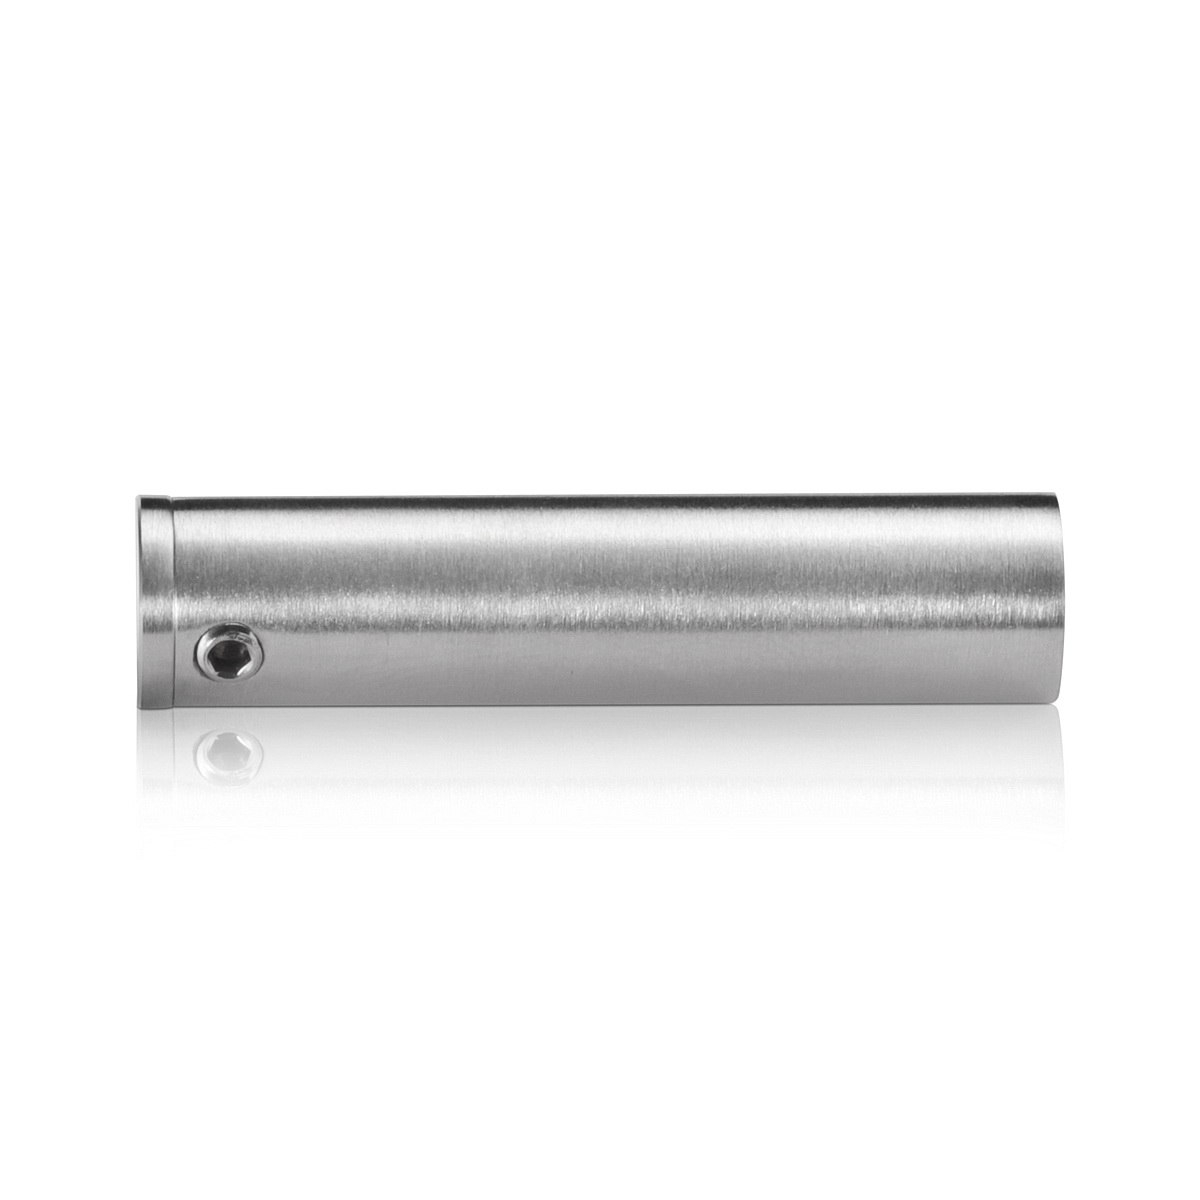 1/2'' Diameter x 2'' Barrel Length, Aluminum Glass Standoff Clear Anodized Finish (Indoor or Outdoor Use)